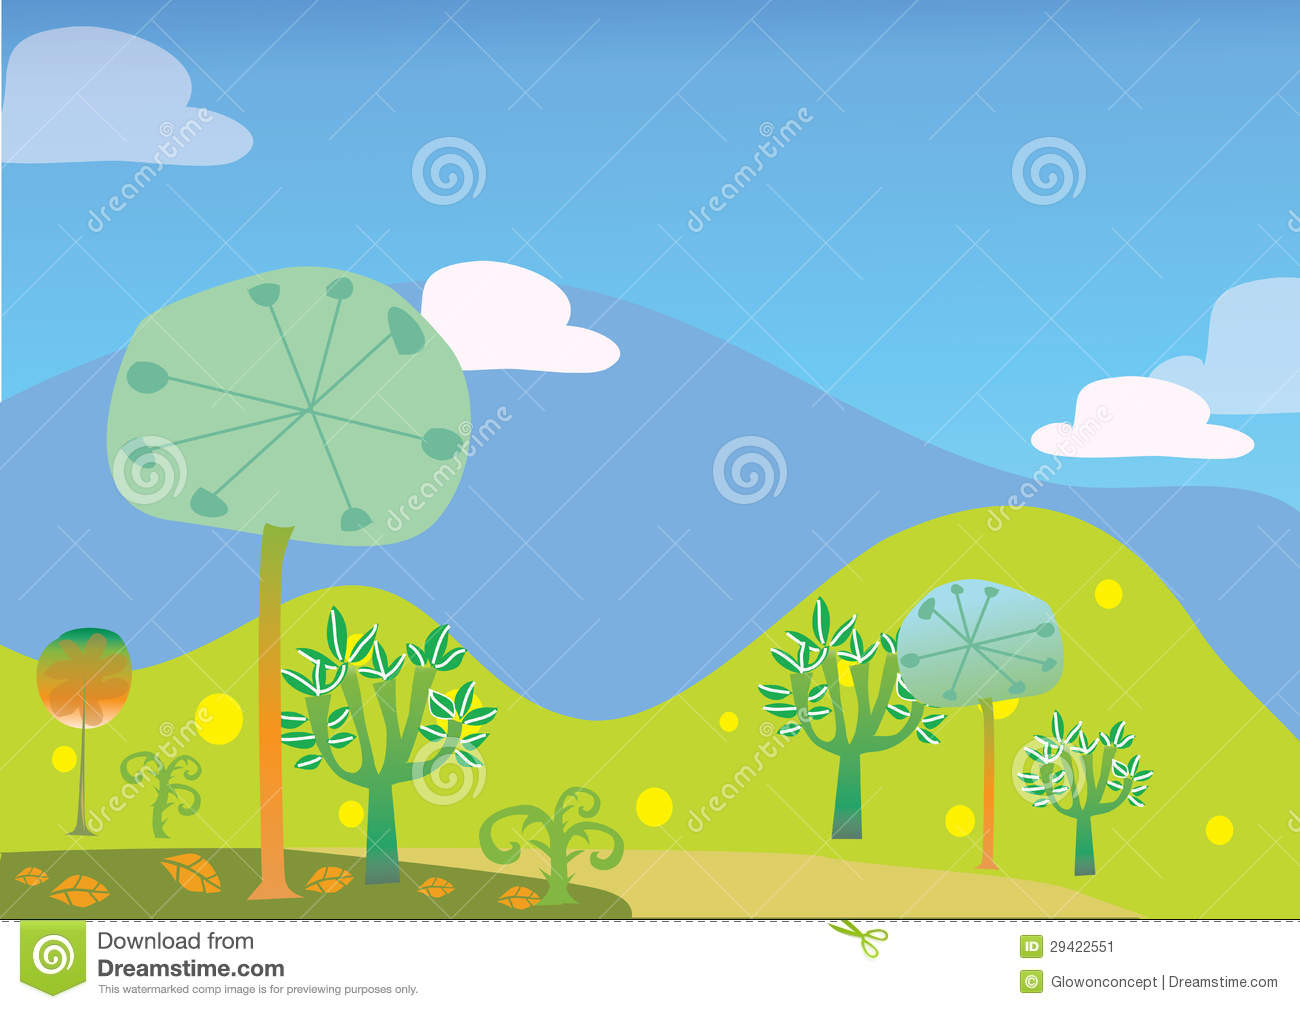 Landscape Illustration Vector Free: Trees And Hill Landscape Vector Kid Illustration Stock